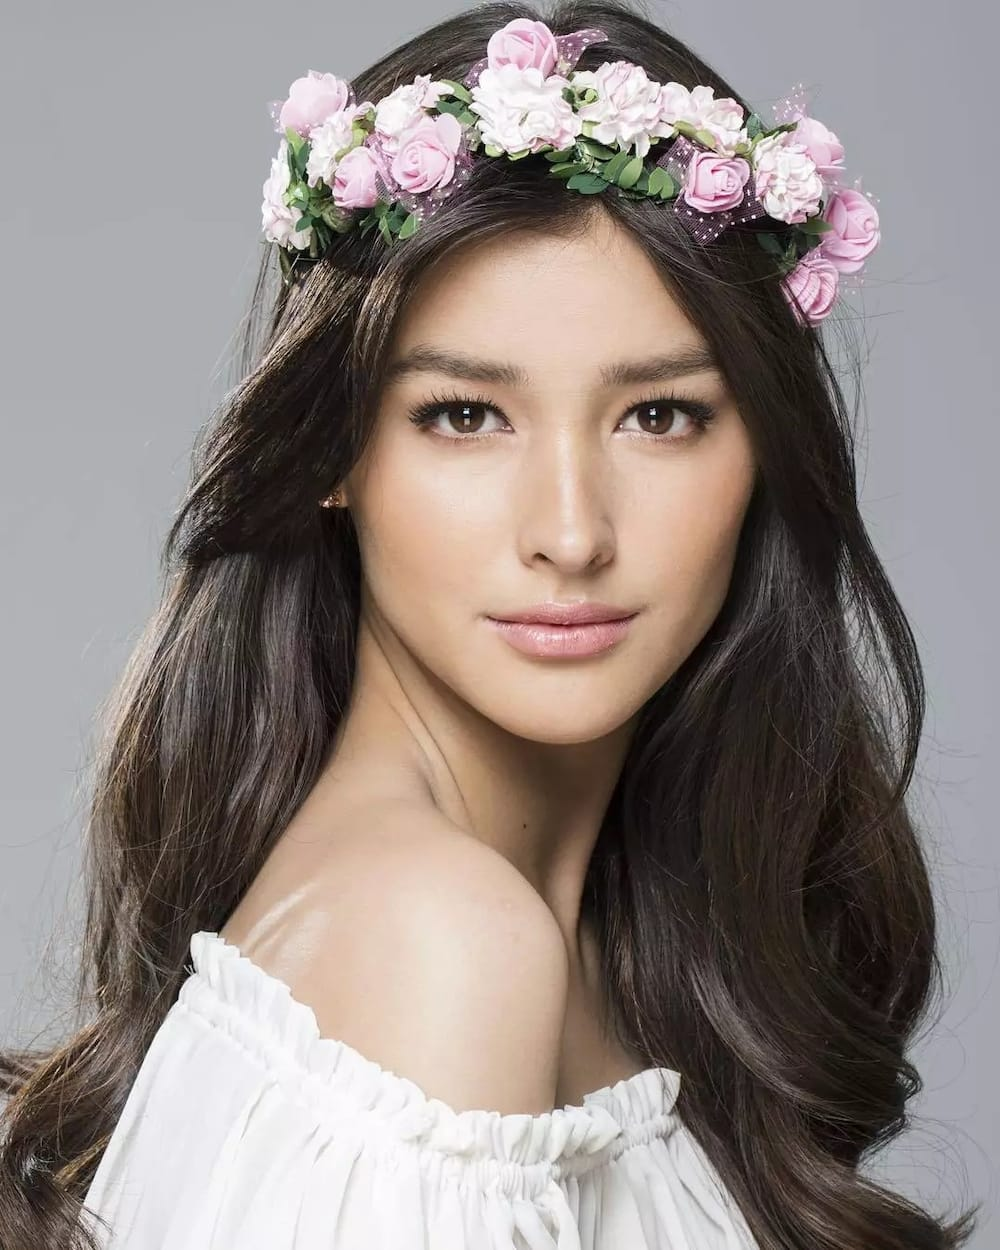 Here are the Philippines most beautiful women